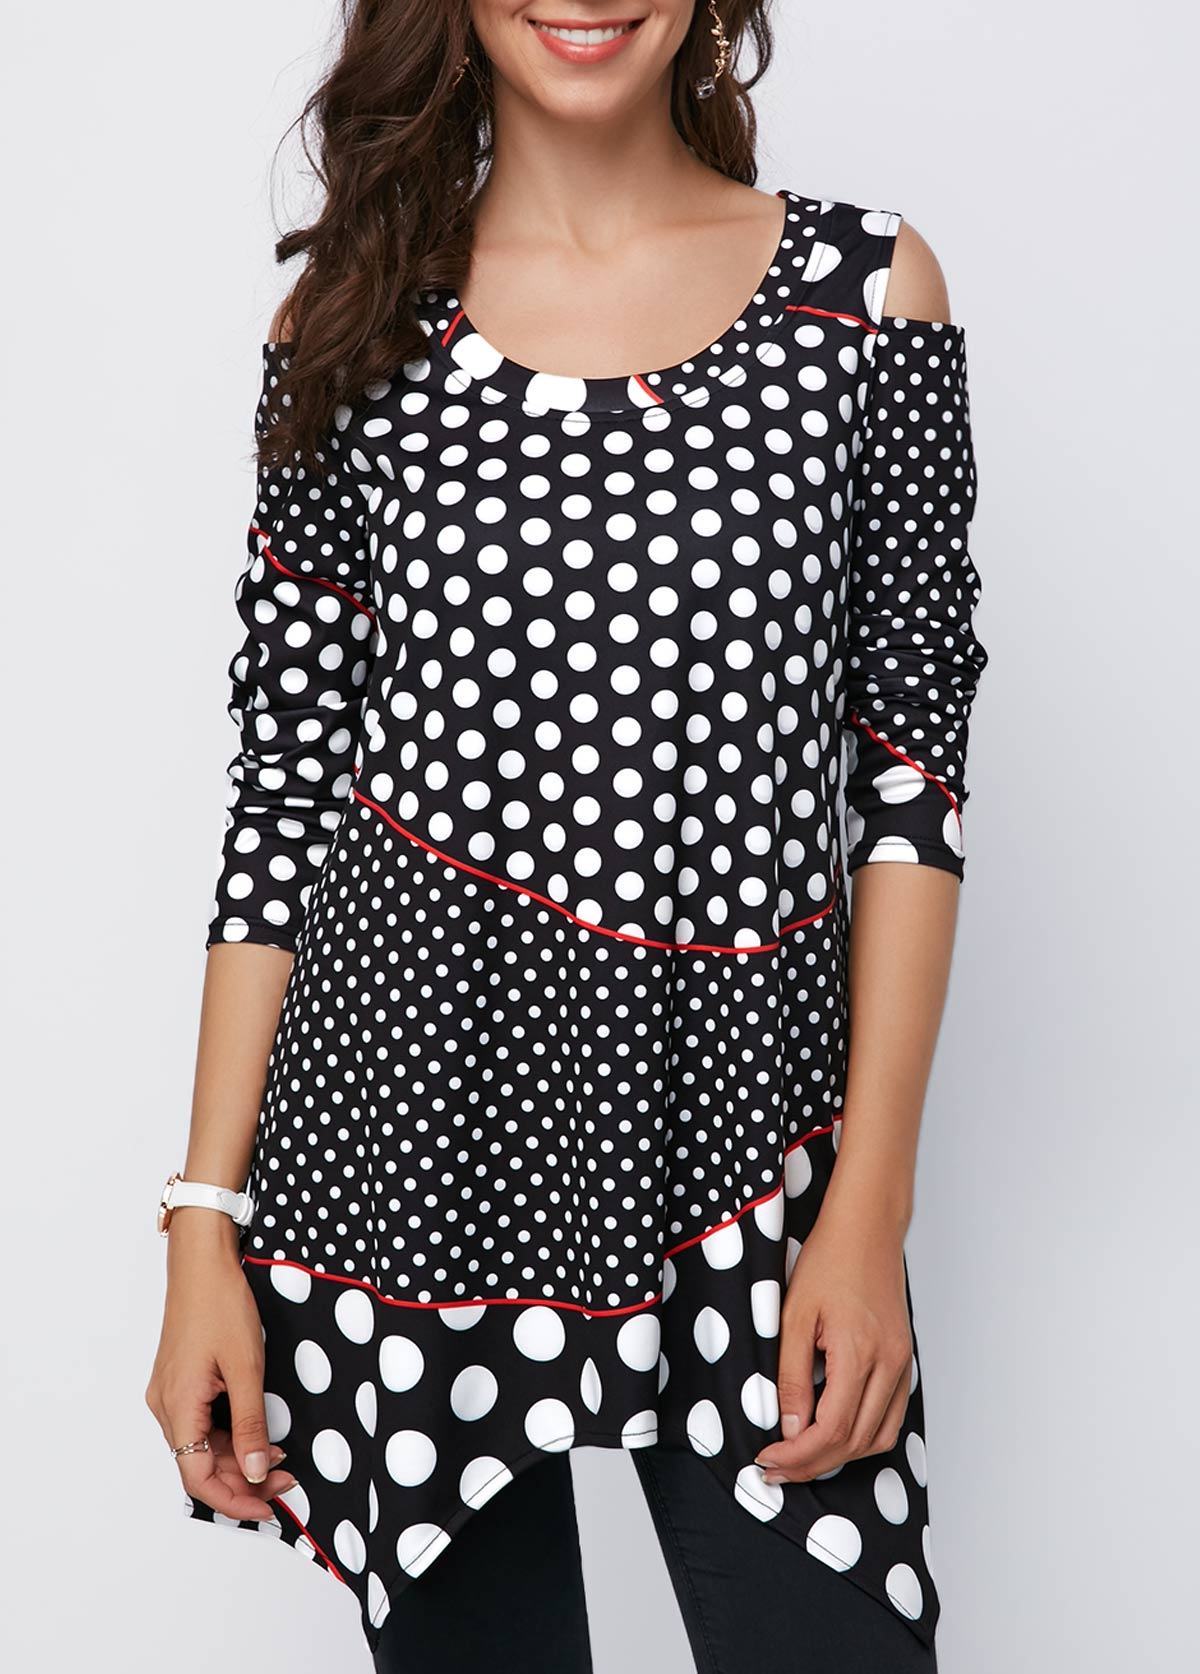 Cold Shoulder Polka Dot Asymmetric Hem Black Blouse